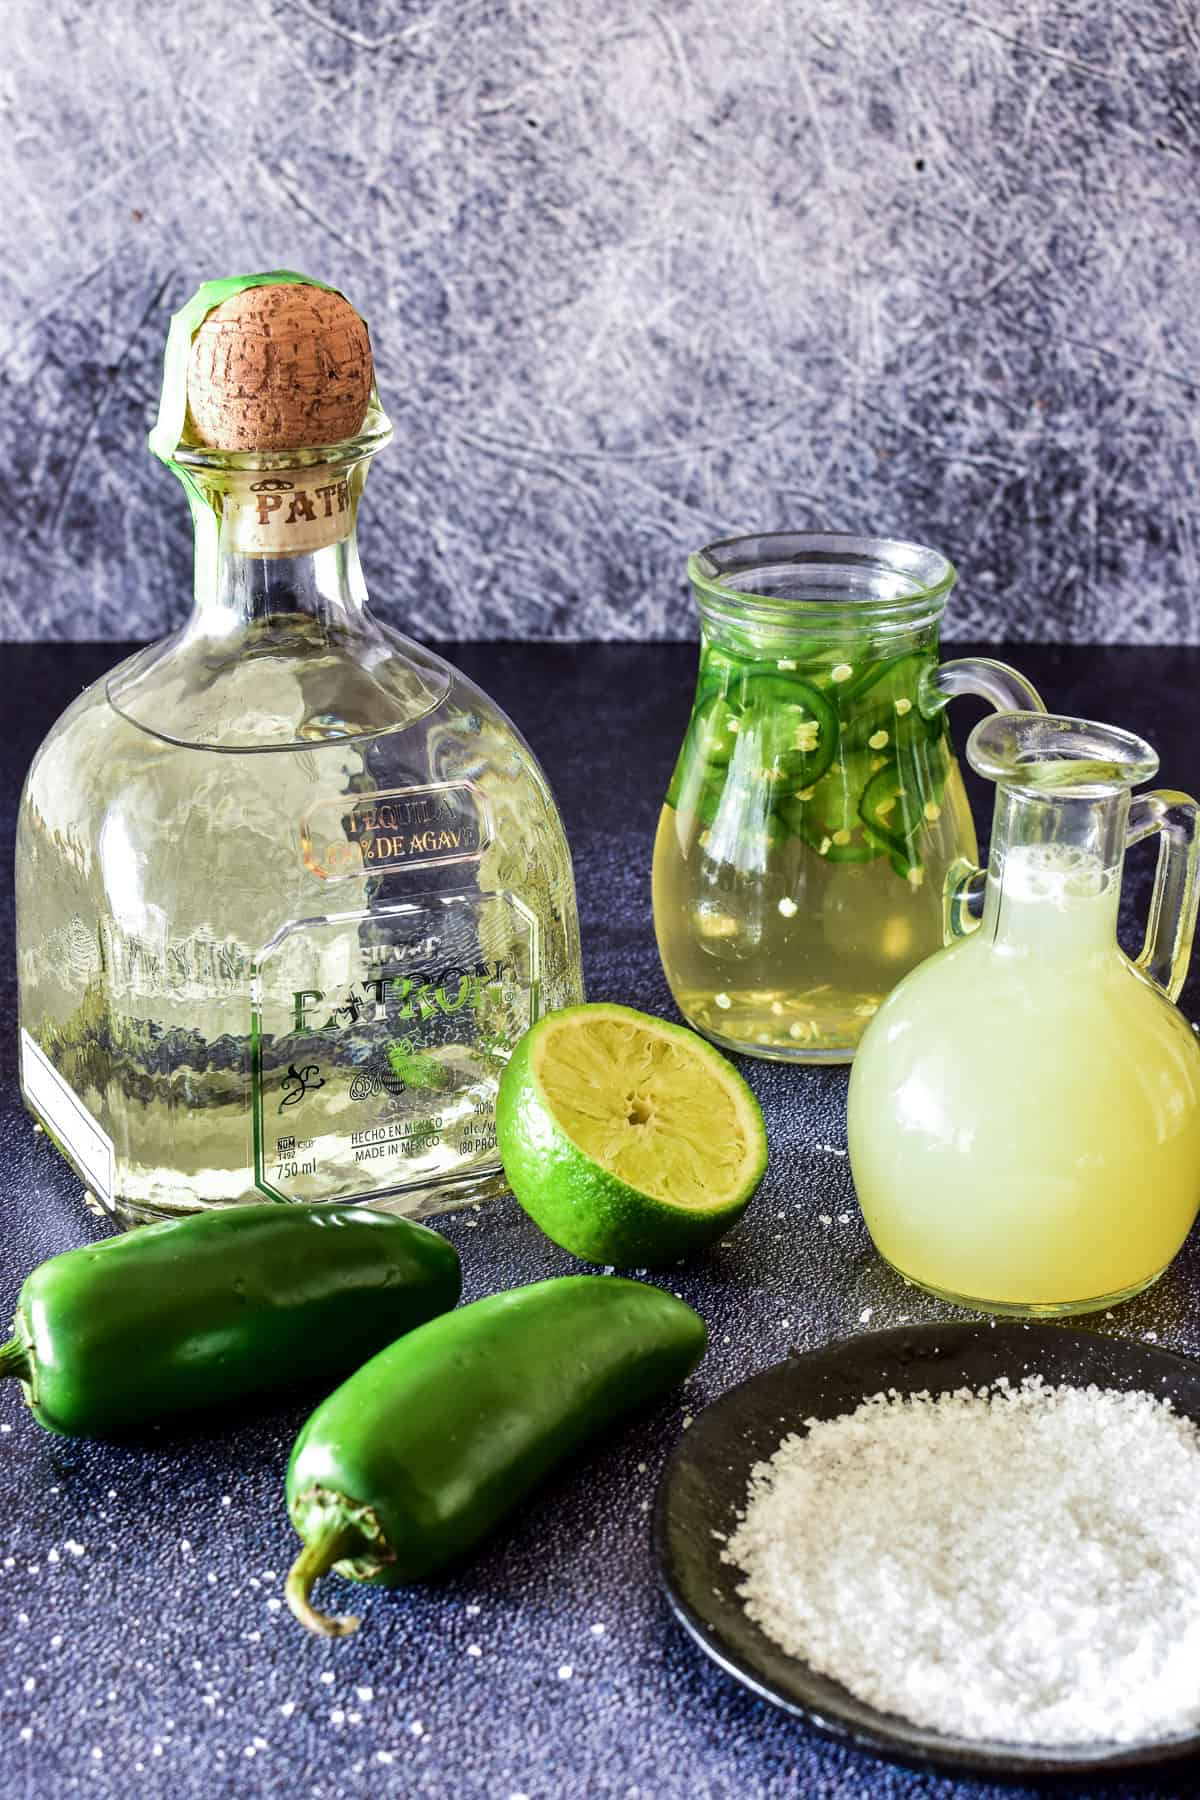 Jalapeño Margarita ingredients